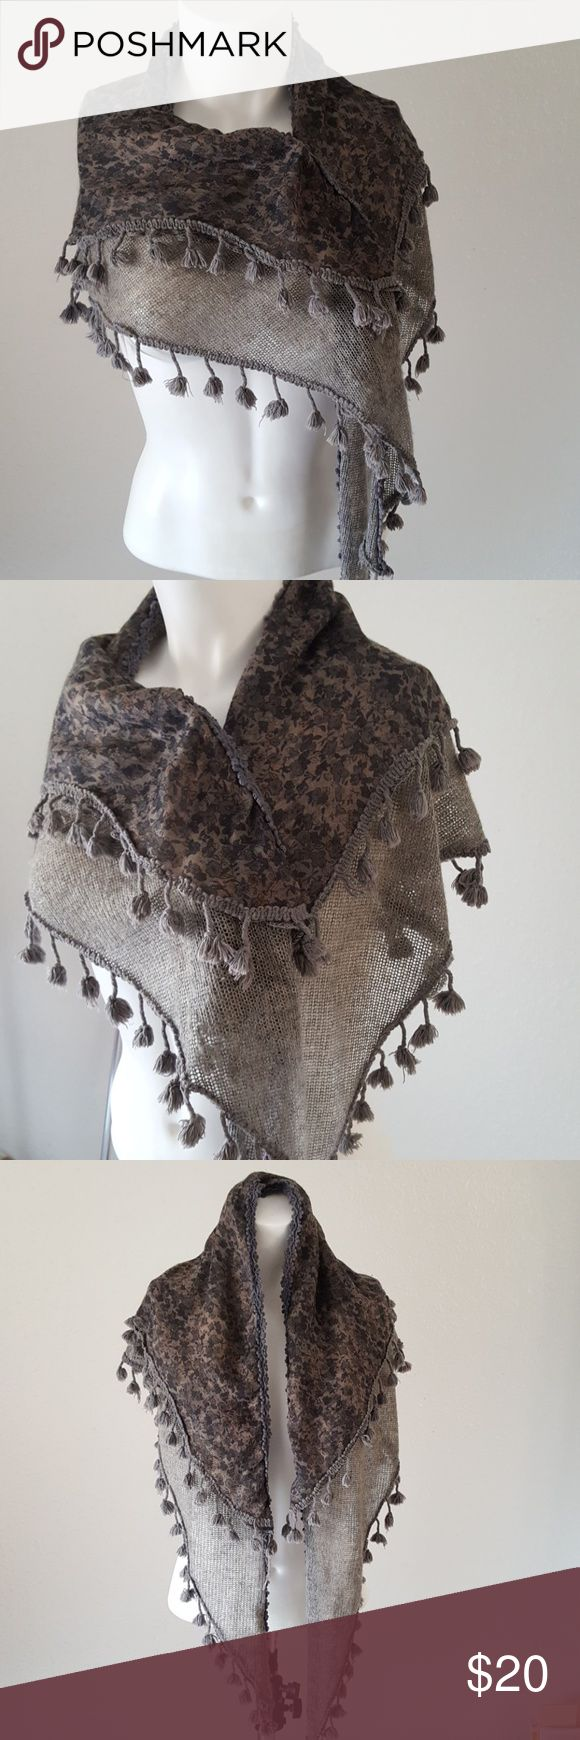 Triangle Scarf Wrap Layered BoHo Tassled frm Egypt Adorable triangle scarf from Egypt. Two sides of pattern one plaid the other fliral. Larger part of scarf is gray. Few pom pom tassels missing. A real stylish BoHo feel to it. Accessories Scarves & Wraps